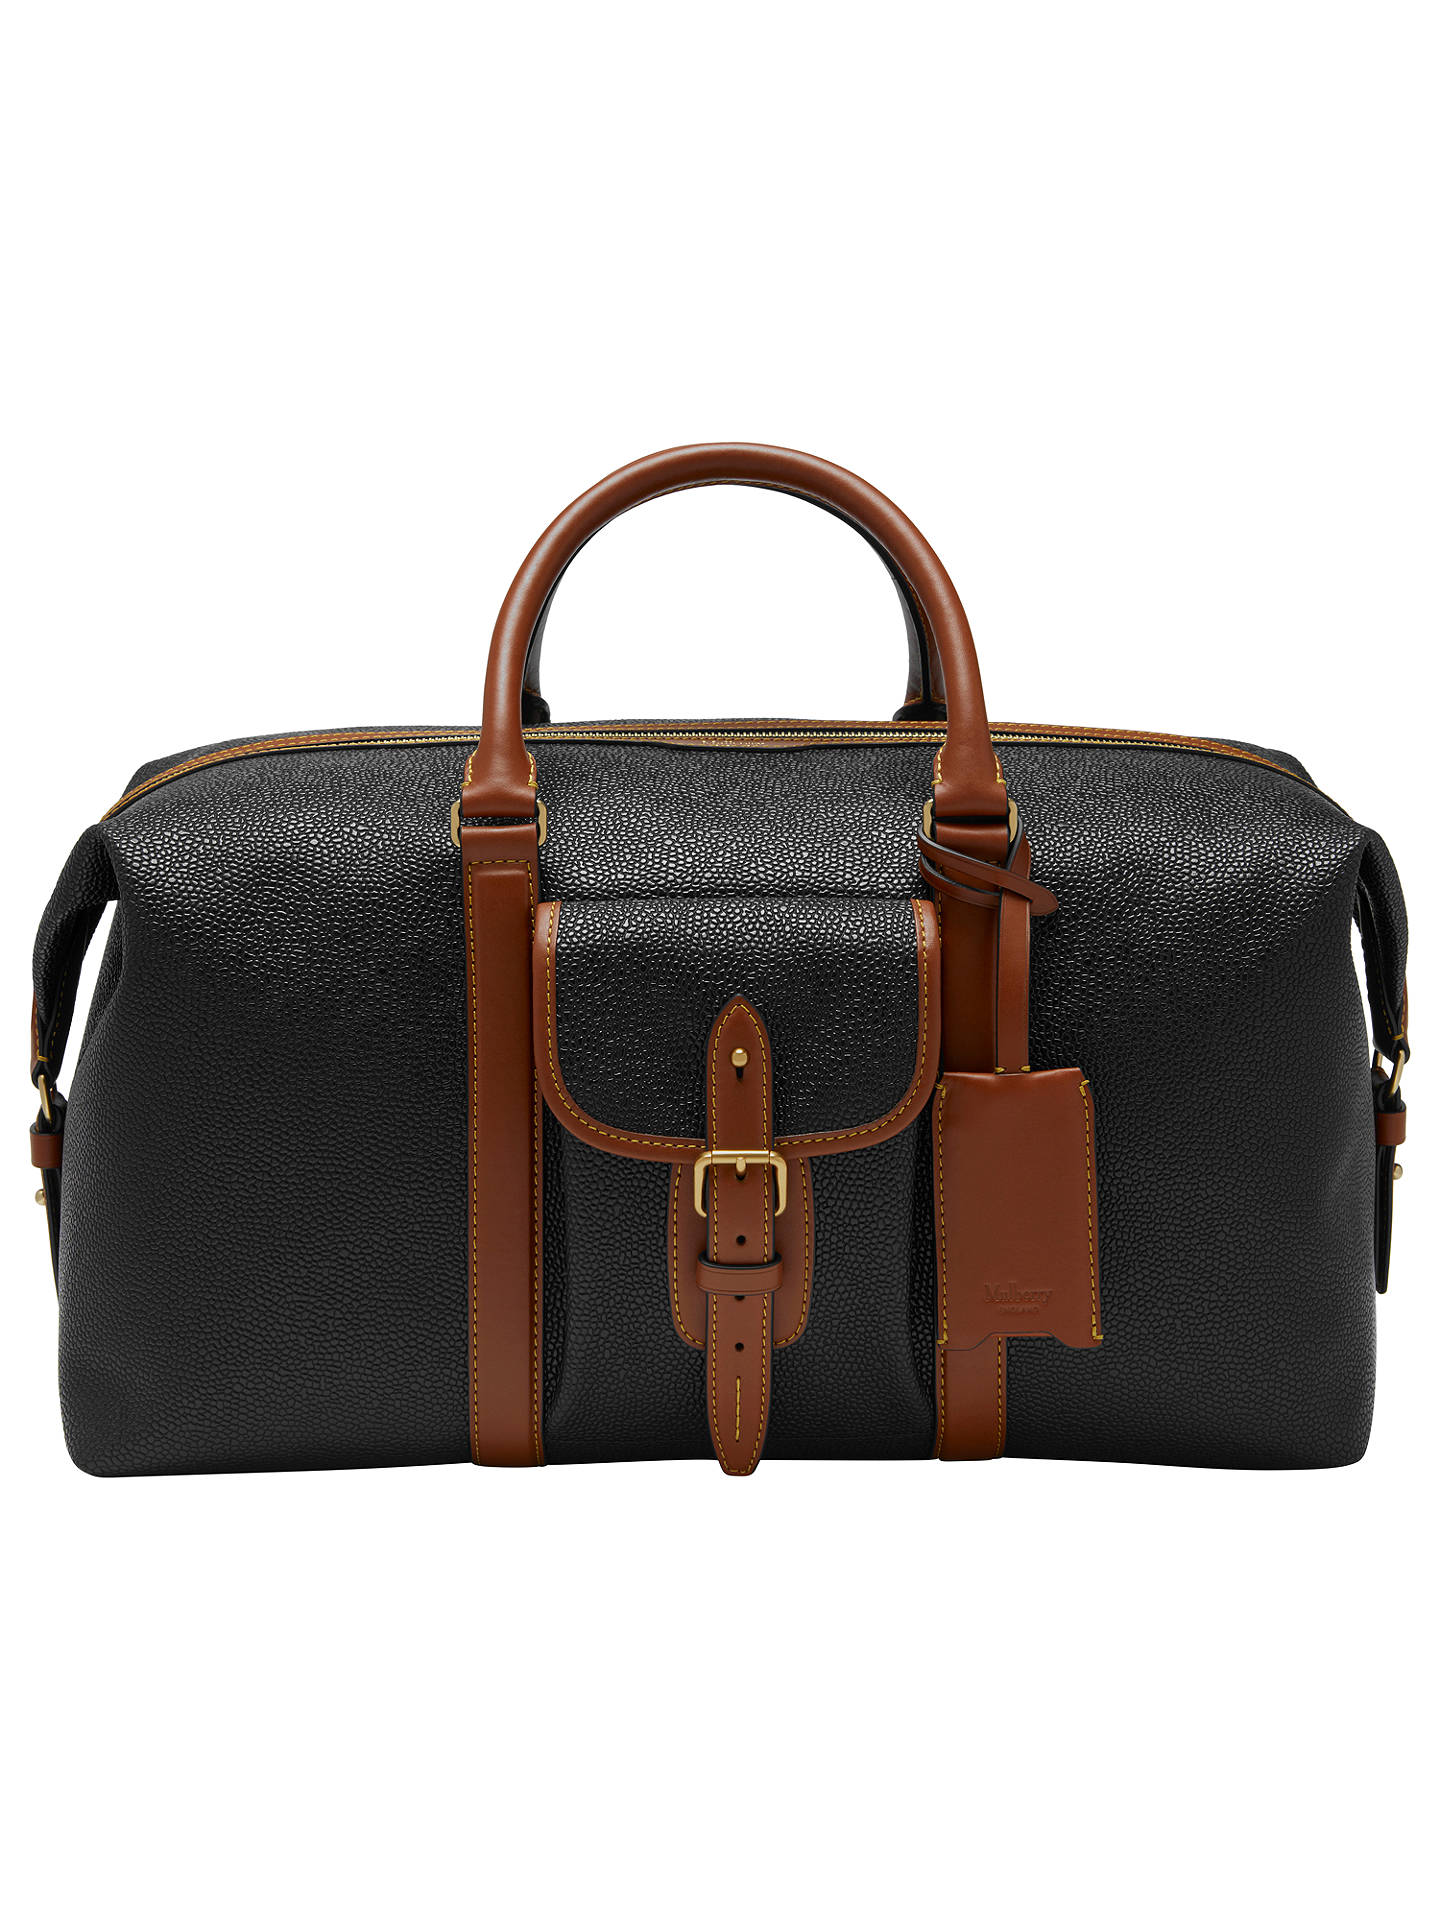 9748babc609b ... germany buymulberry heritage scotchgrain weekend bag black online at  johnlewis 0055e 0375d